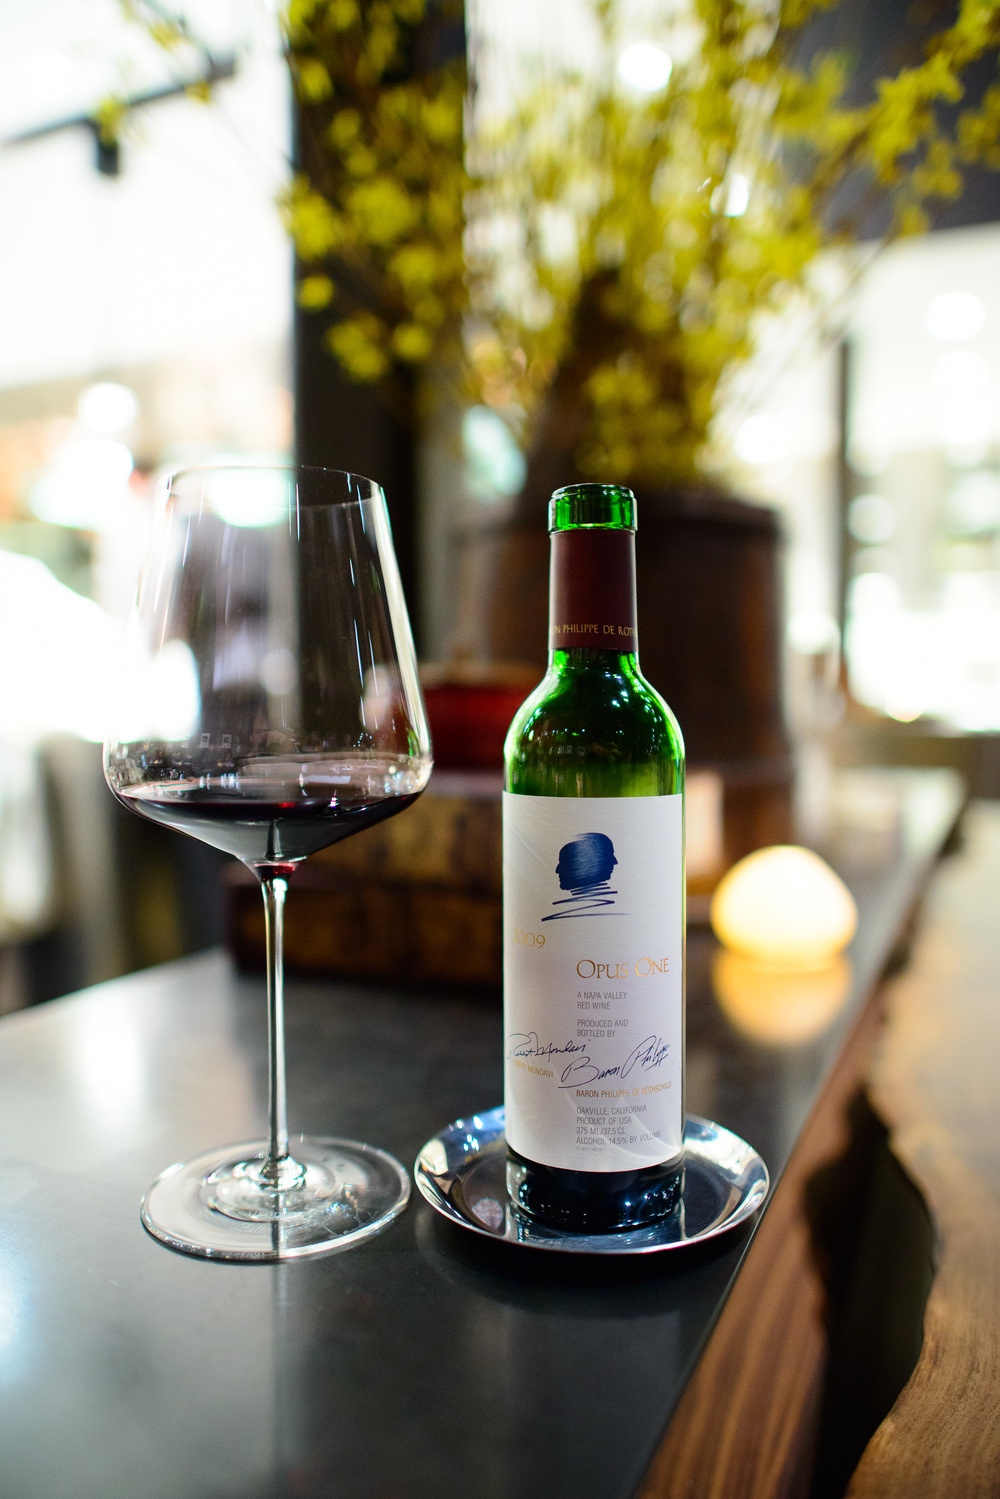 Robert Mondavi Opus One 2009